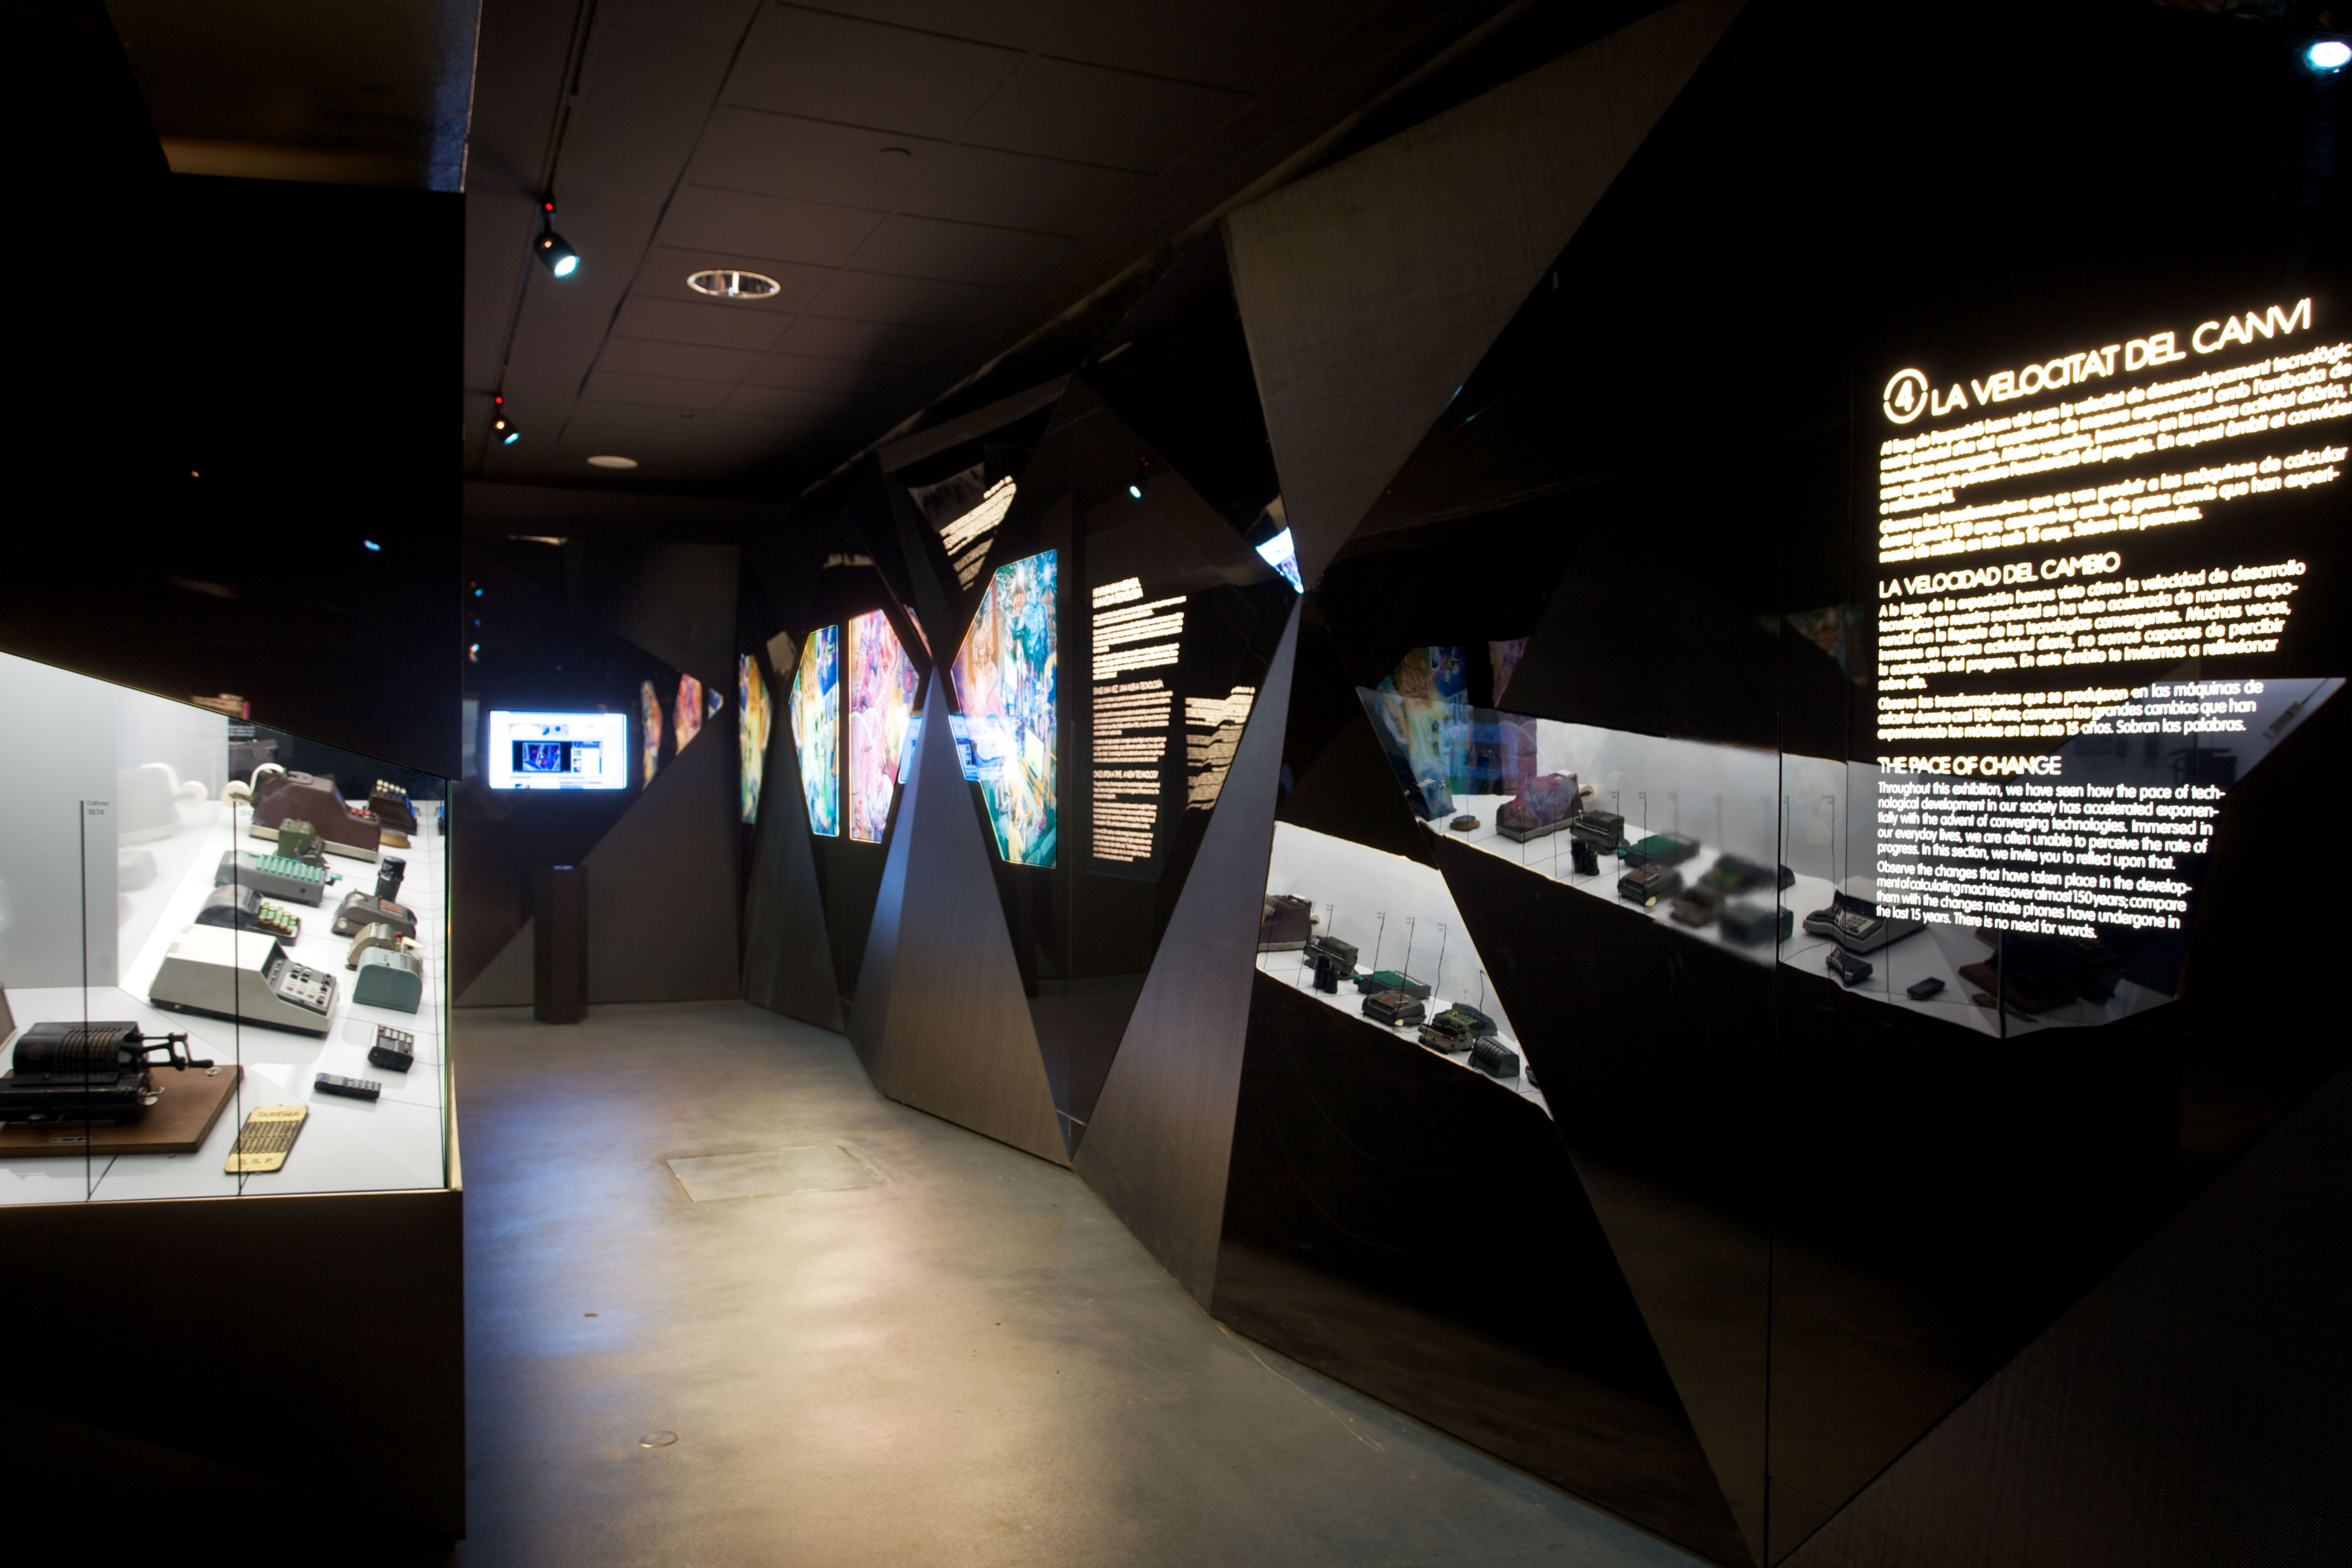 Exhibition Stand Layout : Techno revolution exhibition science museum barcelona by